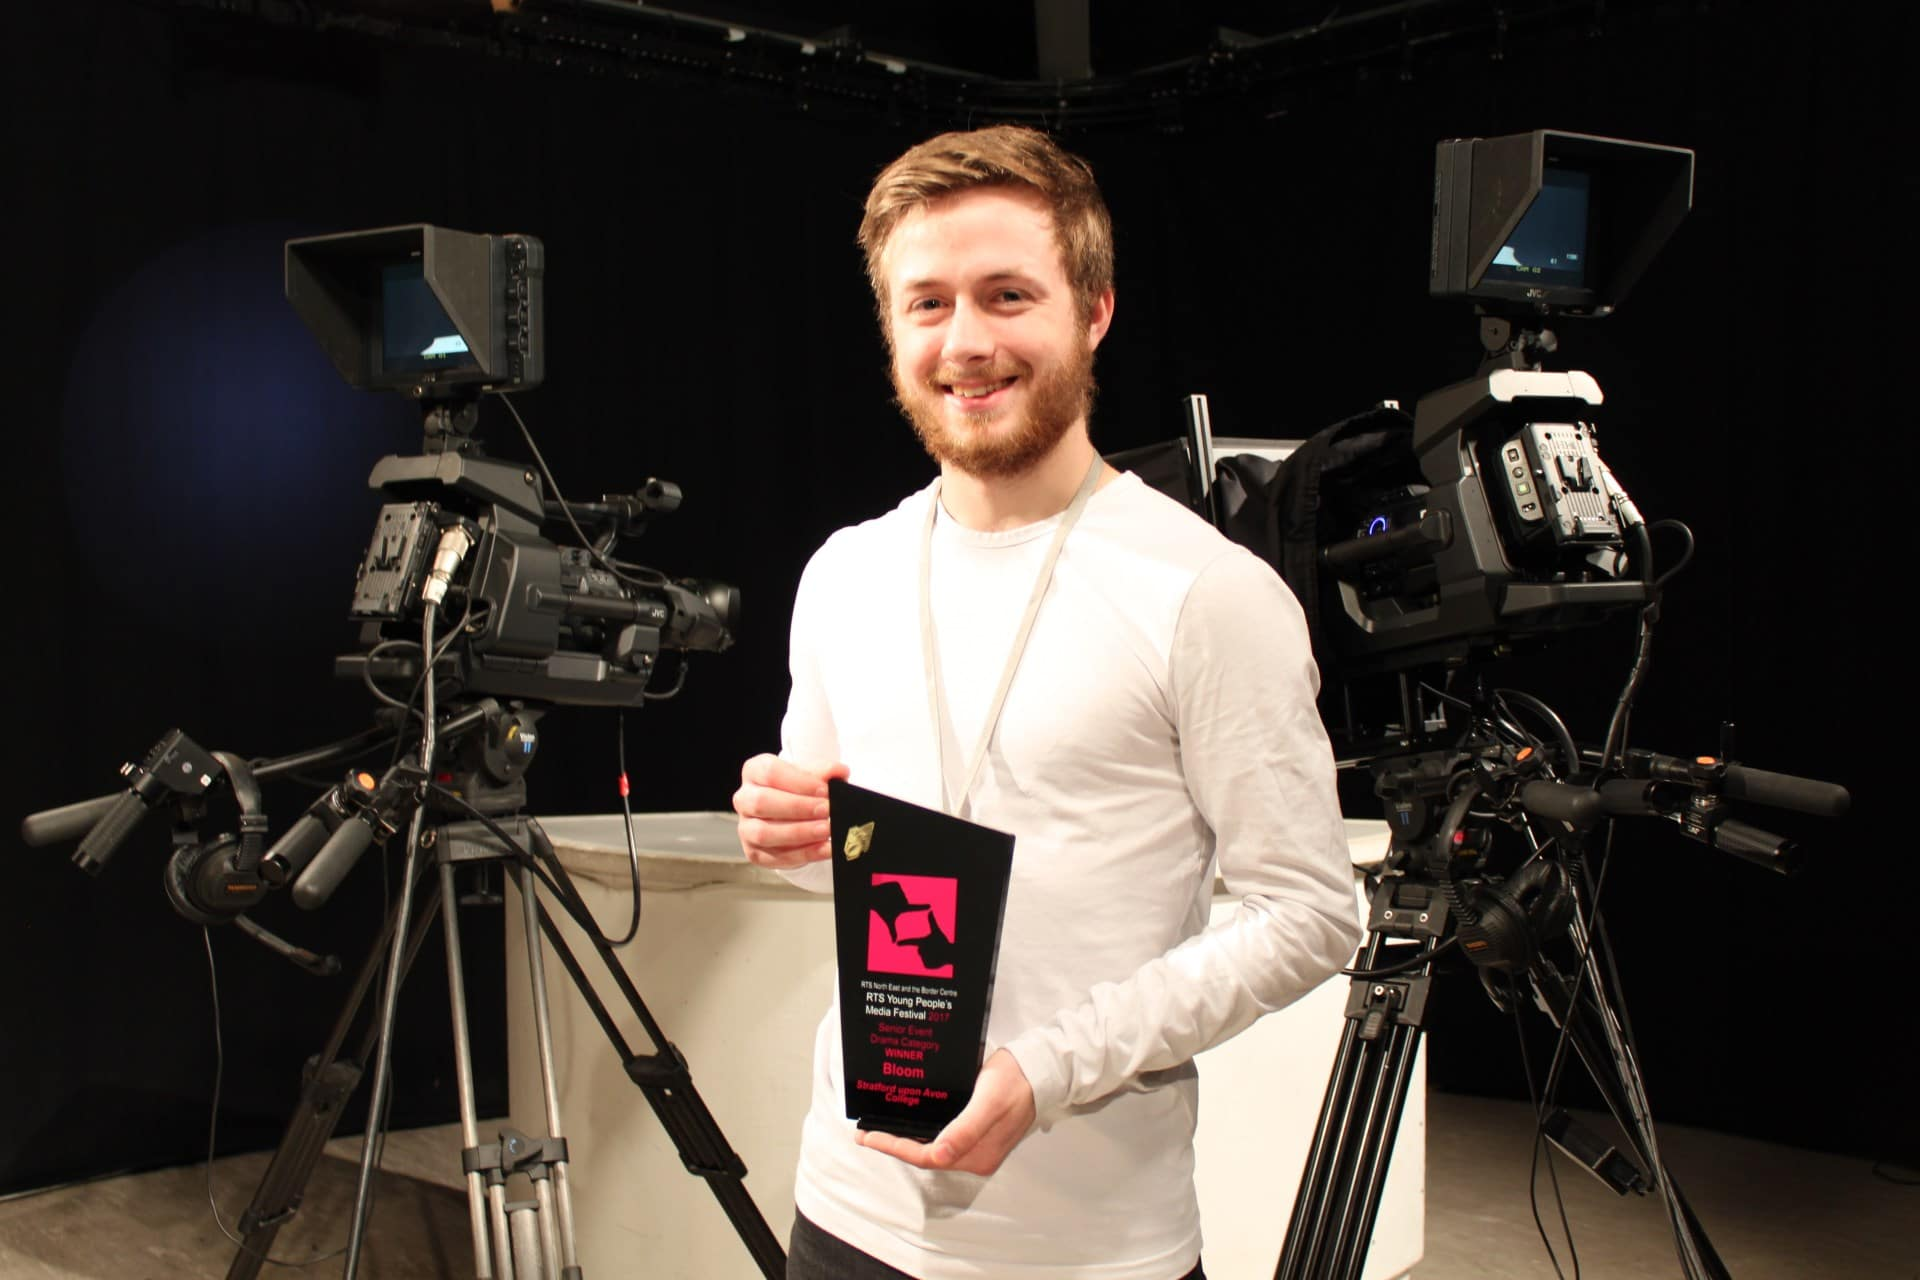 Alexander Eves proudly holding his award in Stratford-upon-College's television studio.